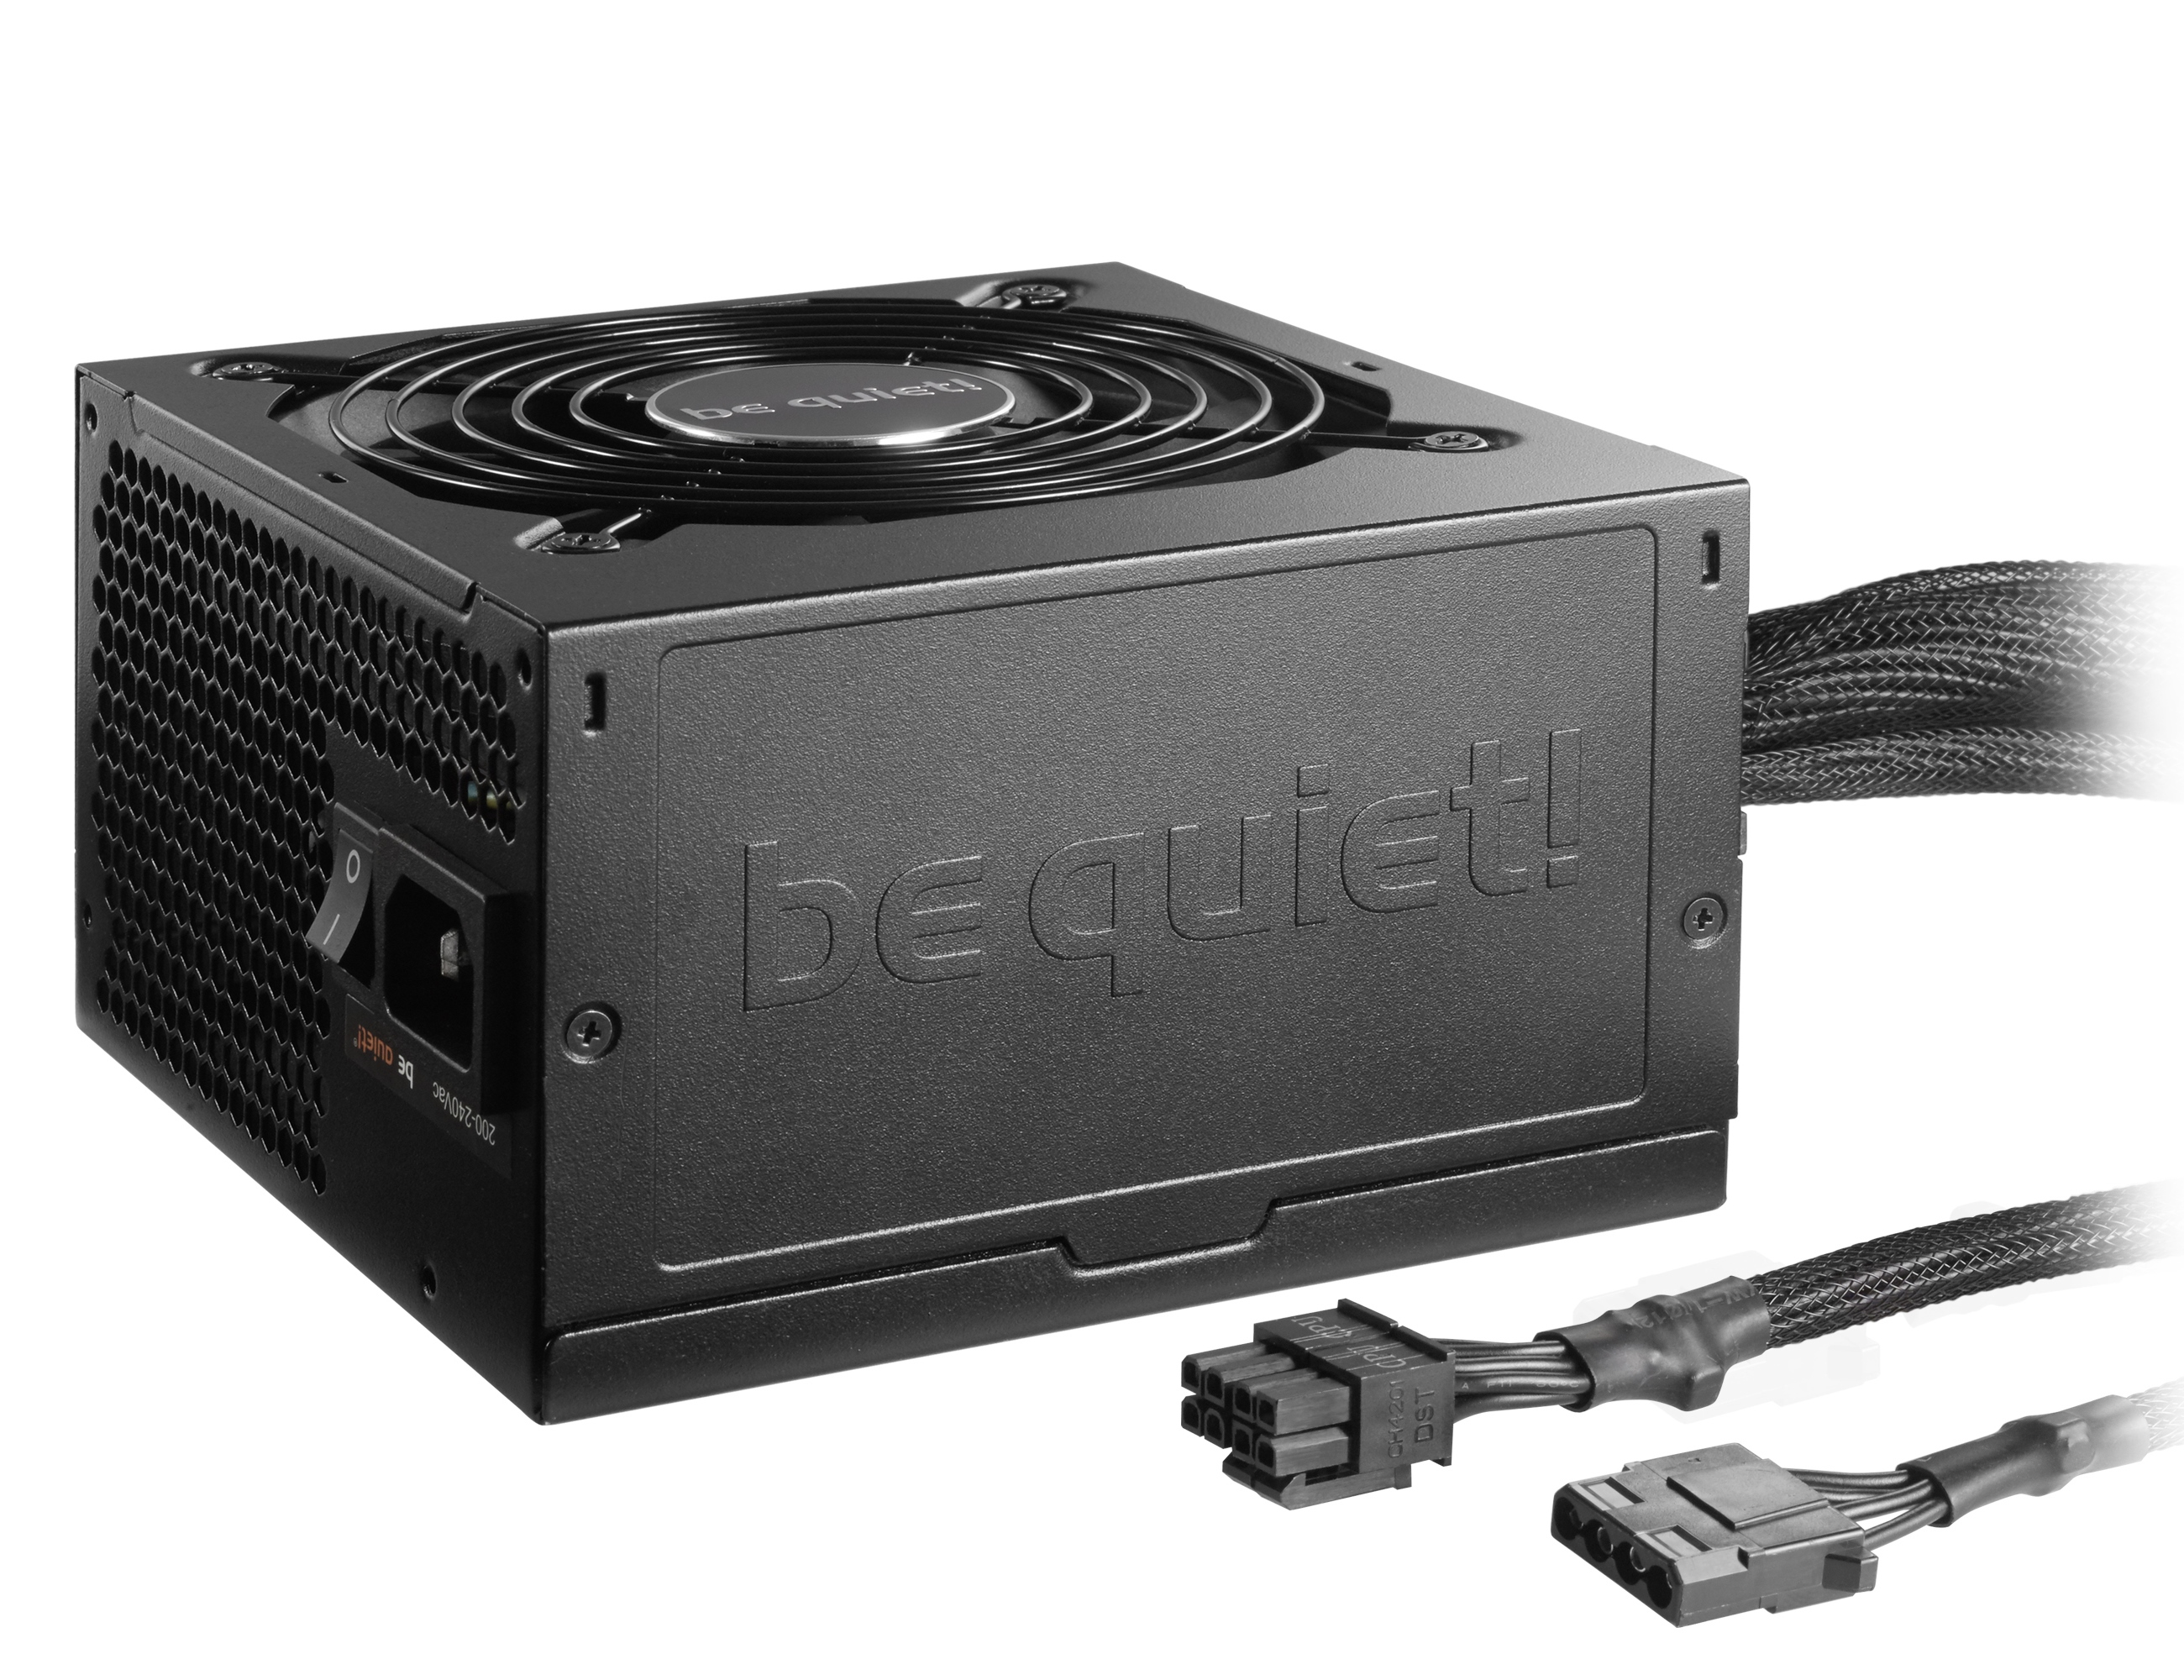 be quiet! System Power 9 400W, 80+ Bronze, ErP, Energy Star 6.1 APFC, Sleeved, 2xPCI-Ex, 5xSATA, 2xPATA, DC-DC // S9-400W